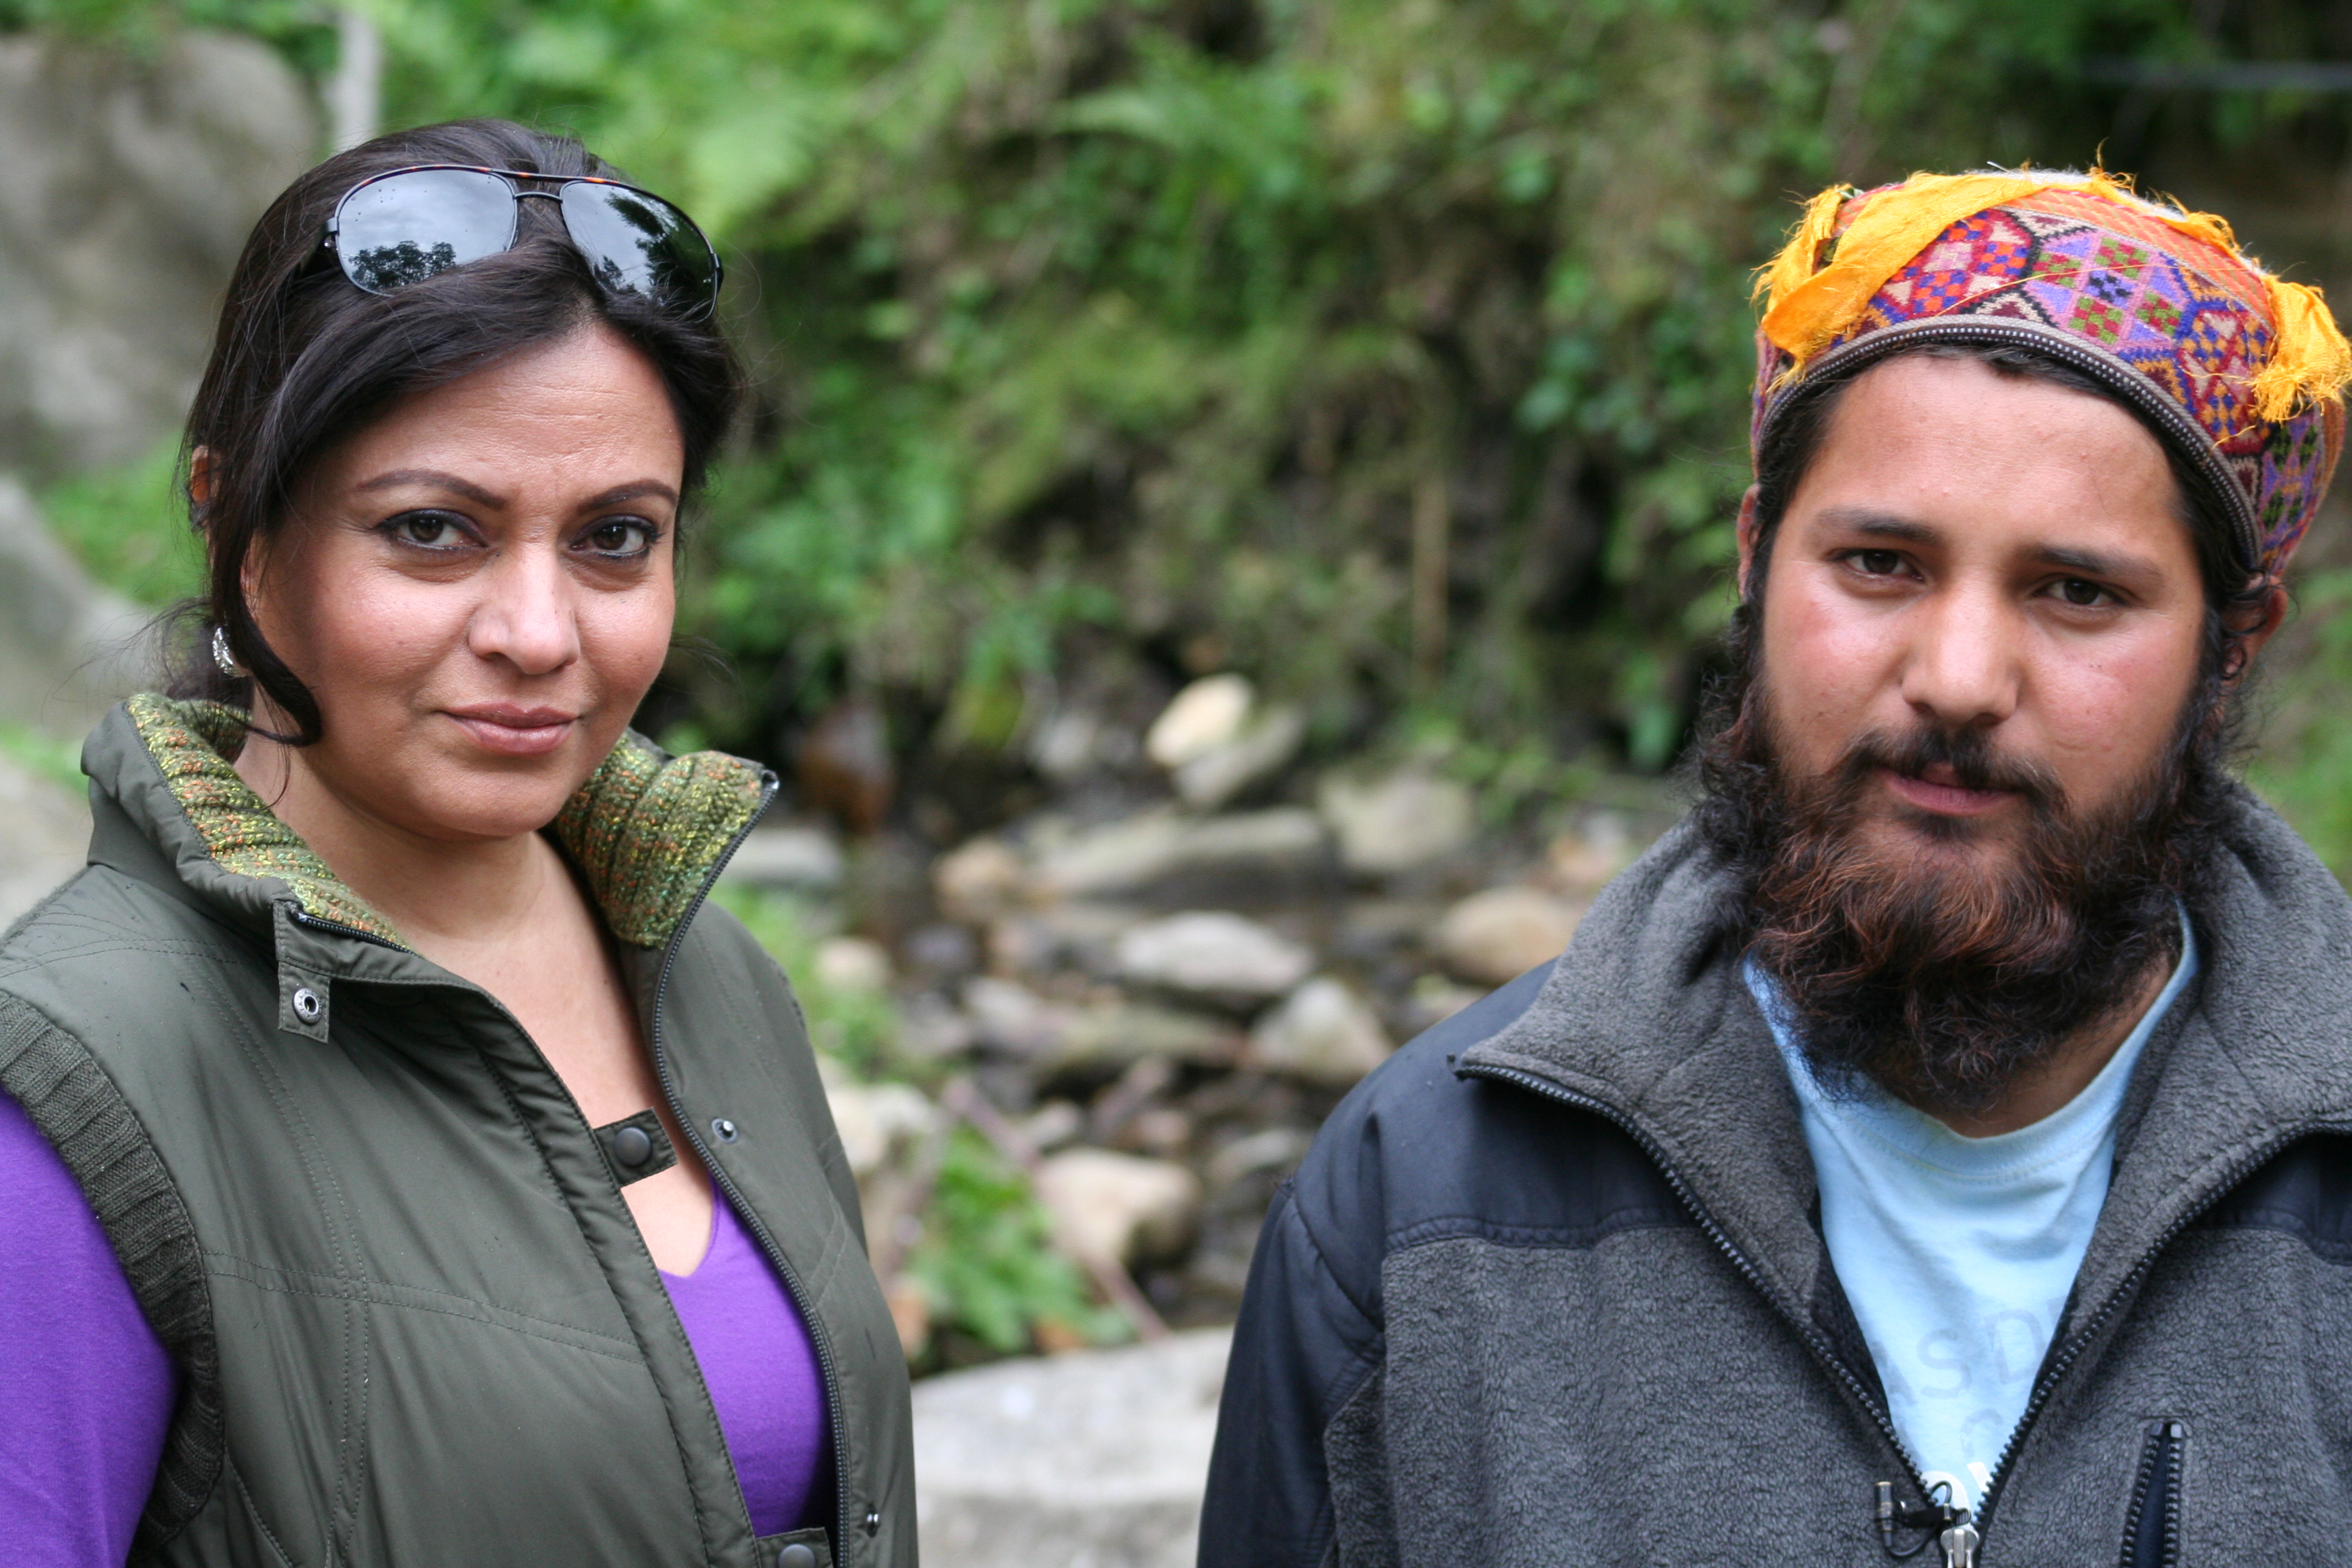 Anu Malhotra, Filmmaker on location, with Himachali shaman, Gur Inderchand 35